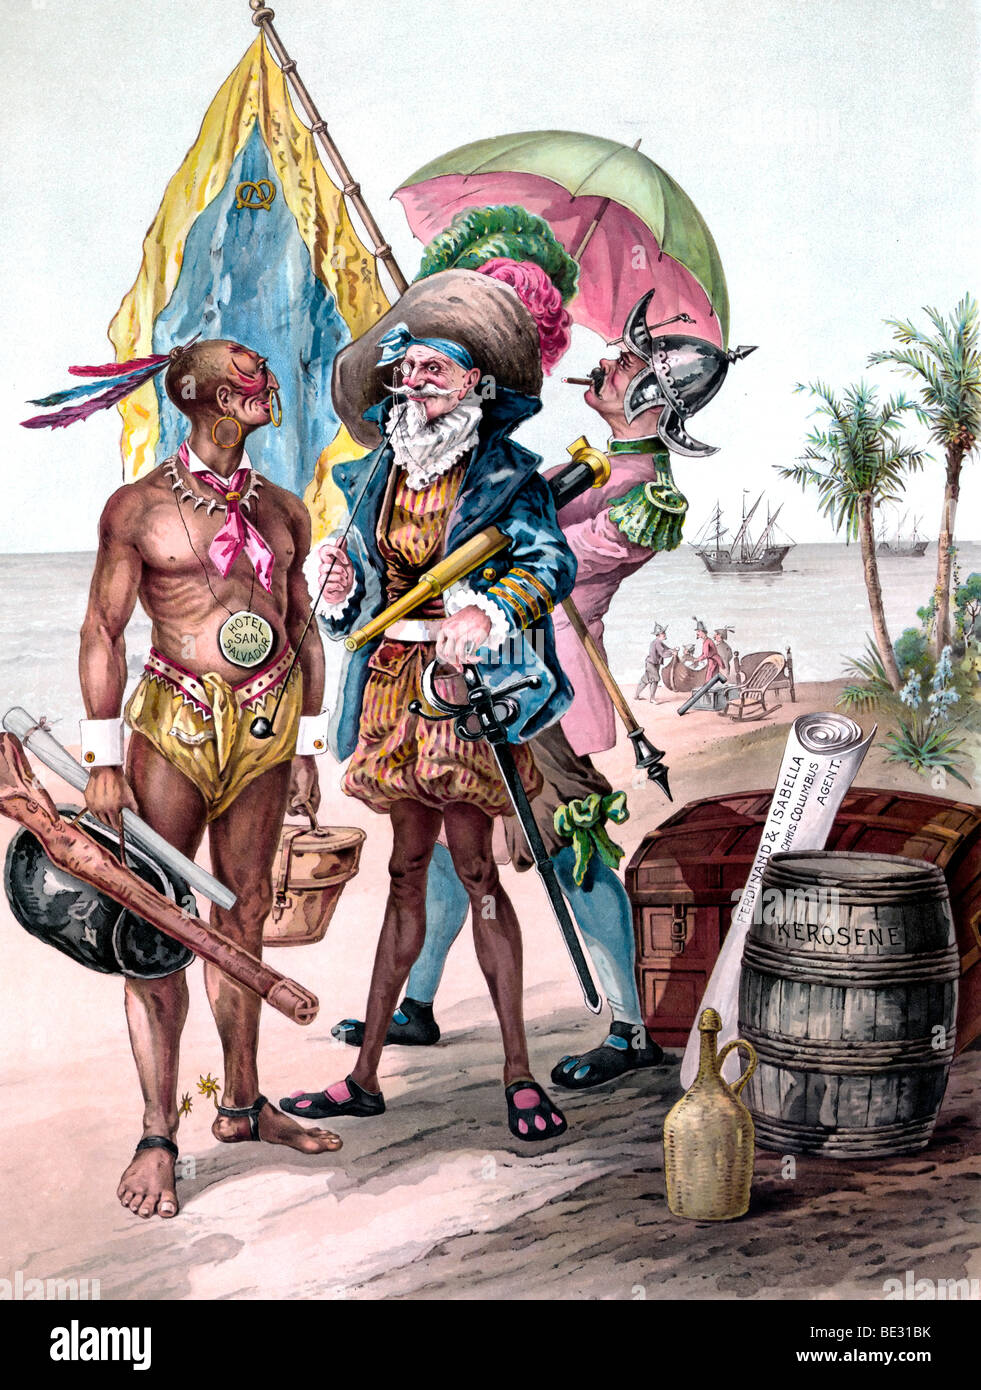 The landing of Christopher Columbus - A satirical look - Stock Image